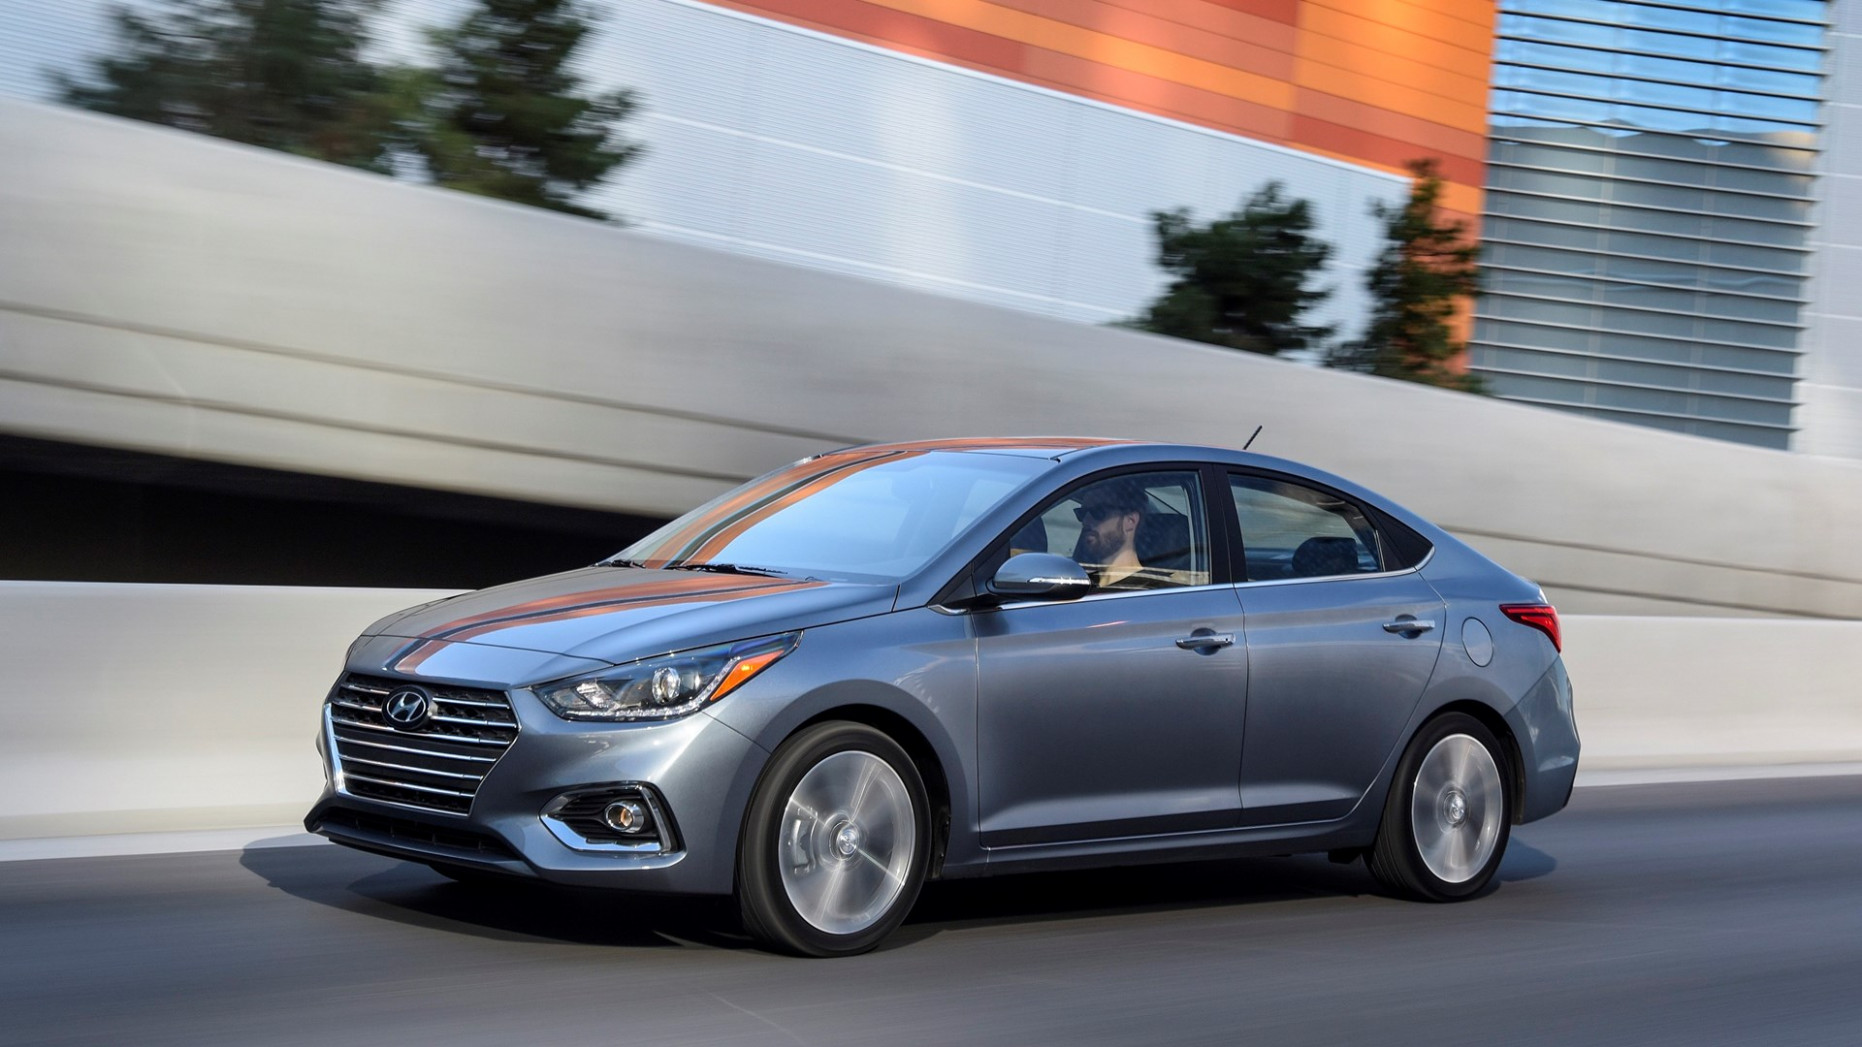 10 Hyundai Accent Boosts Fuel Economy with CVT, New Engine ..